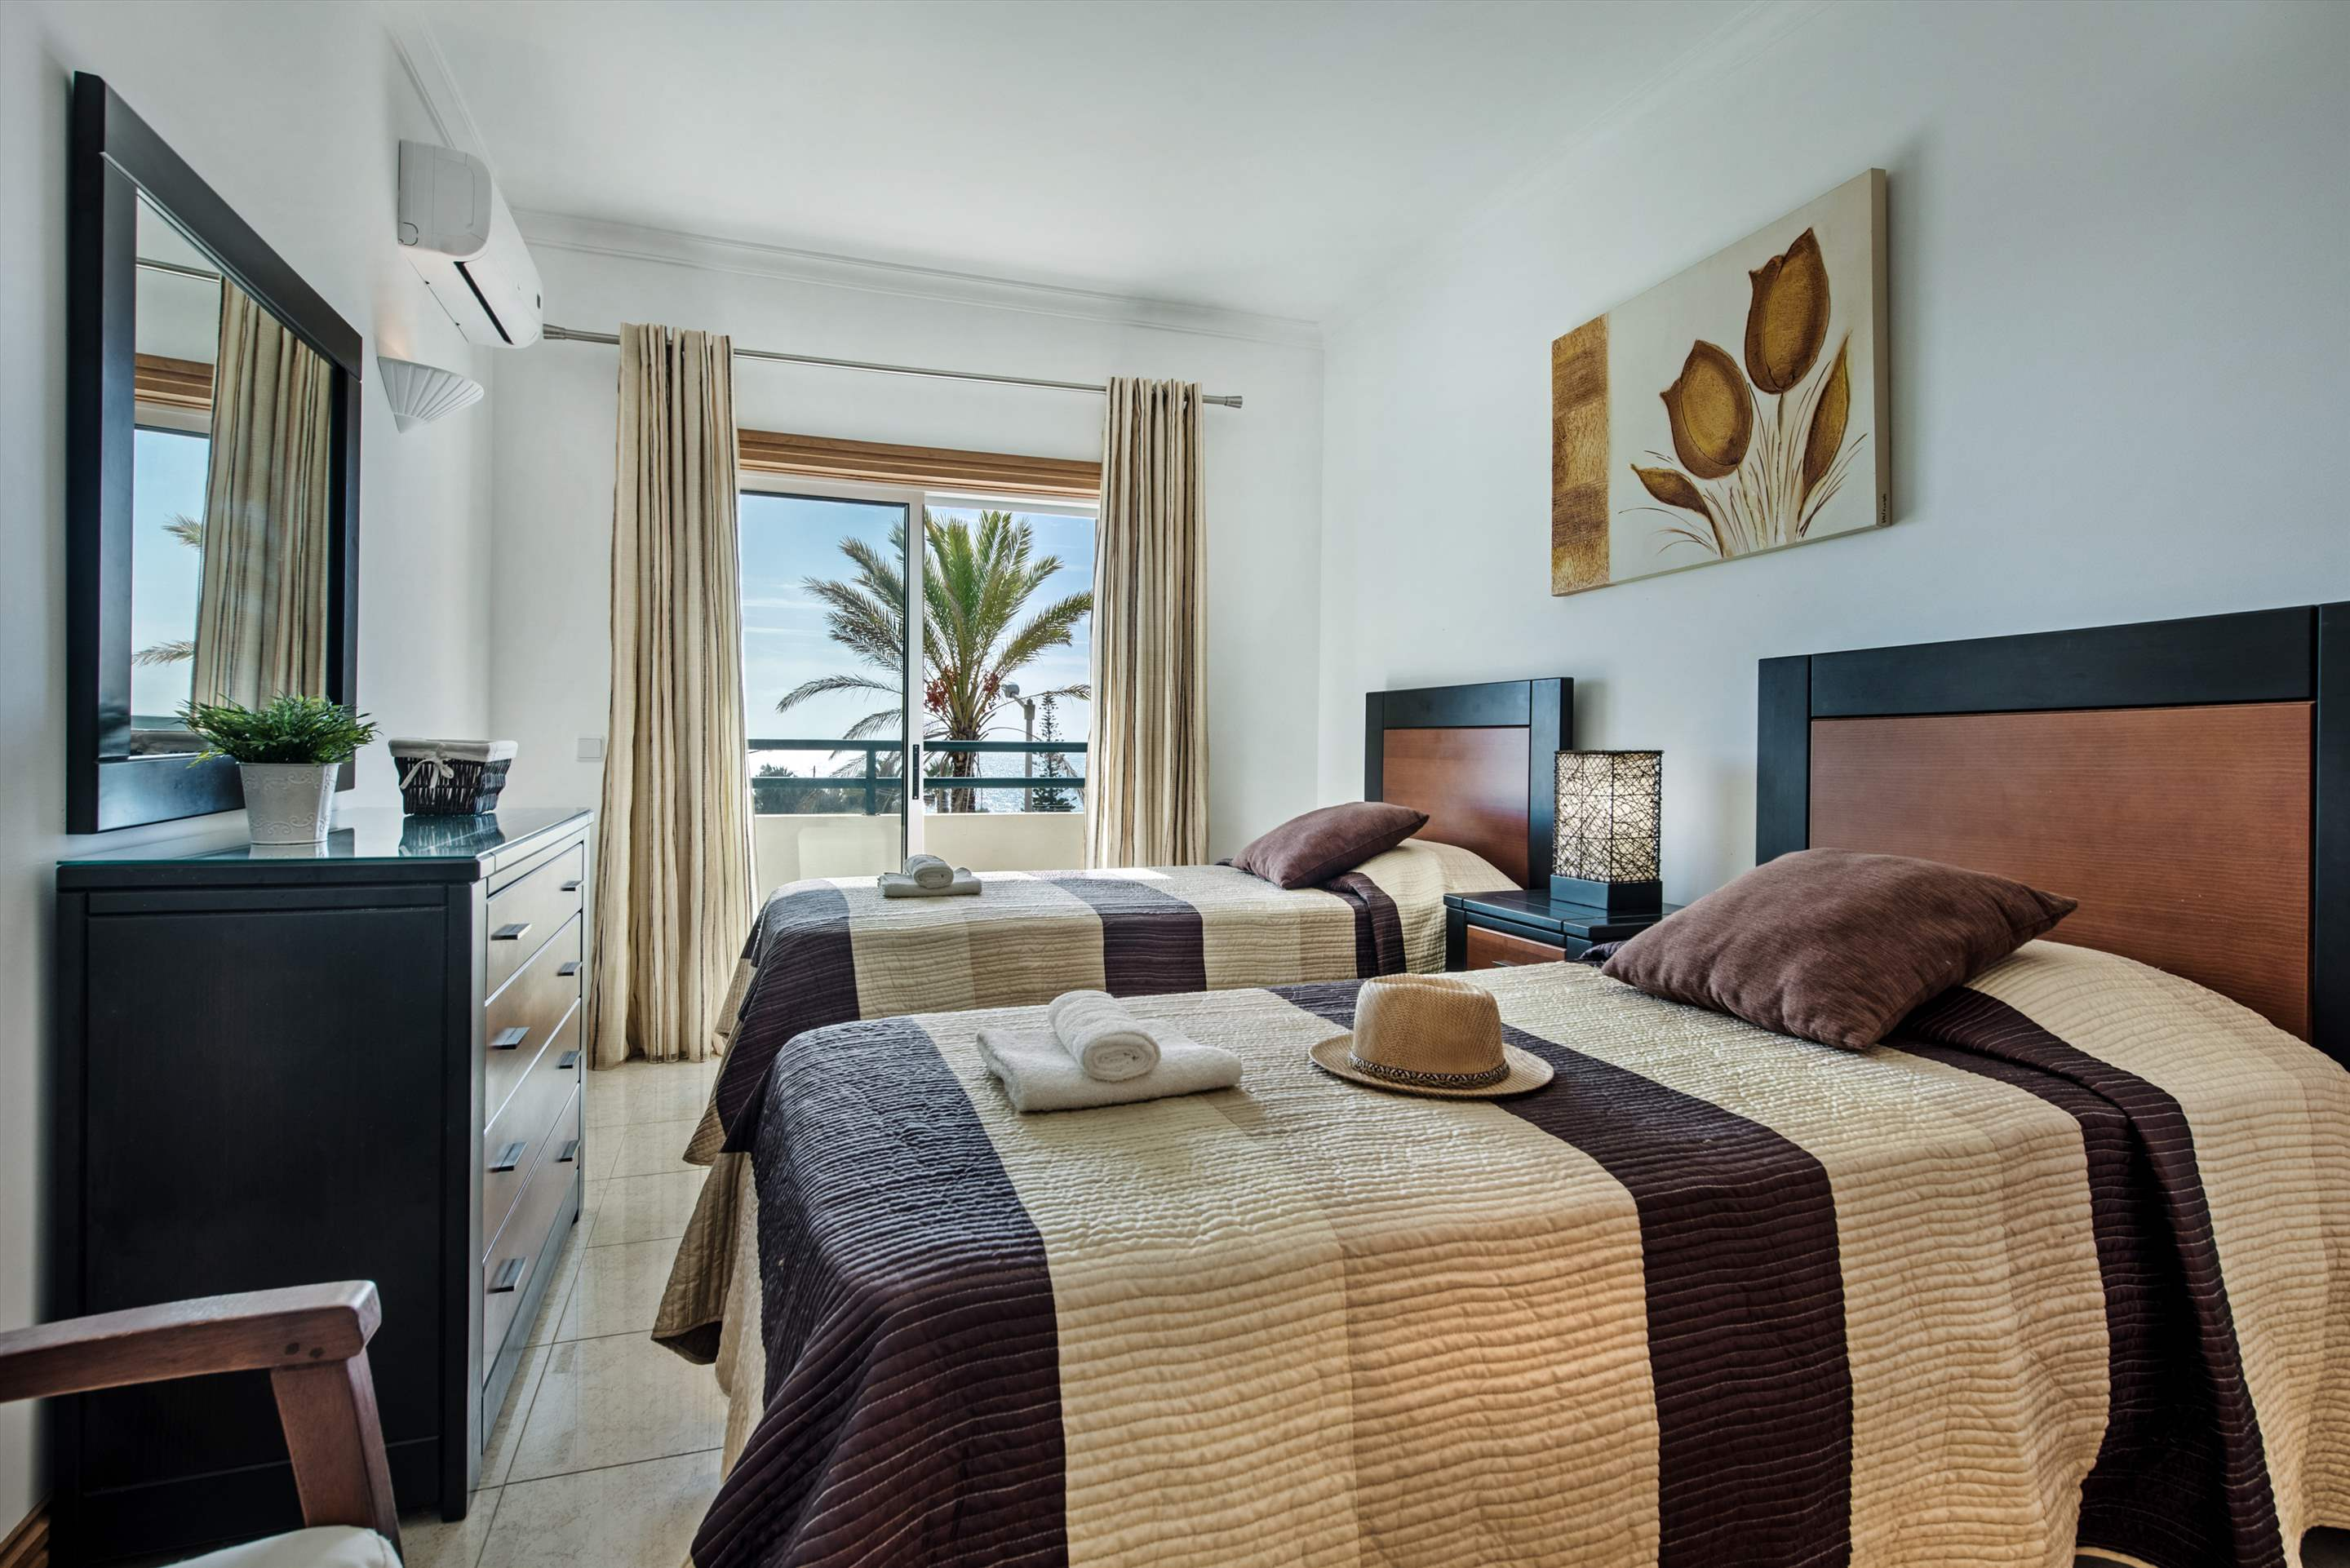 Apt Gale Mar, For 5-6 Persons, 3 bedroom apartment in Gale, Vale da Parra and Guia, Algarve Photo #15